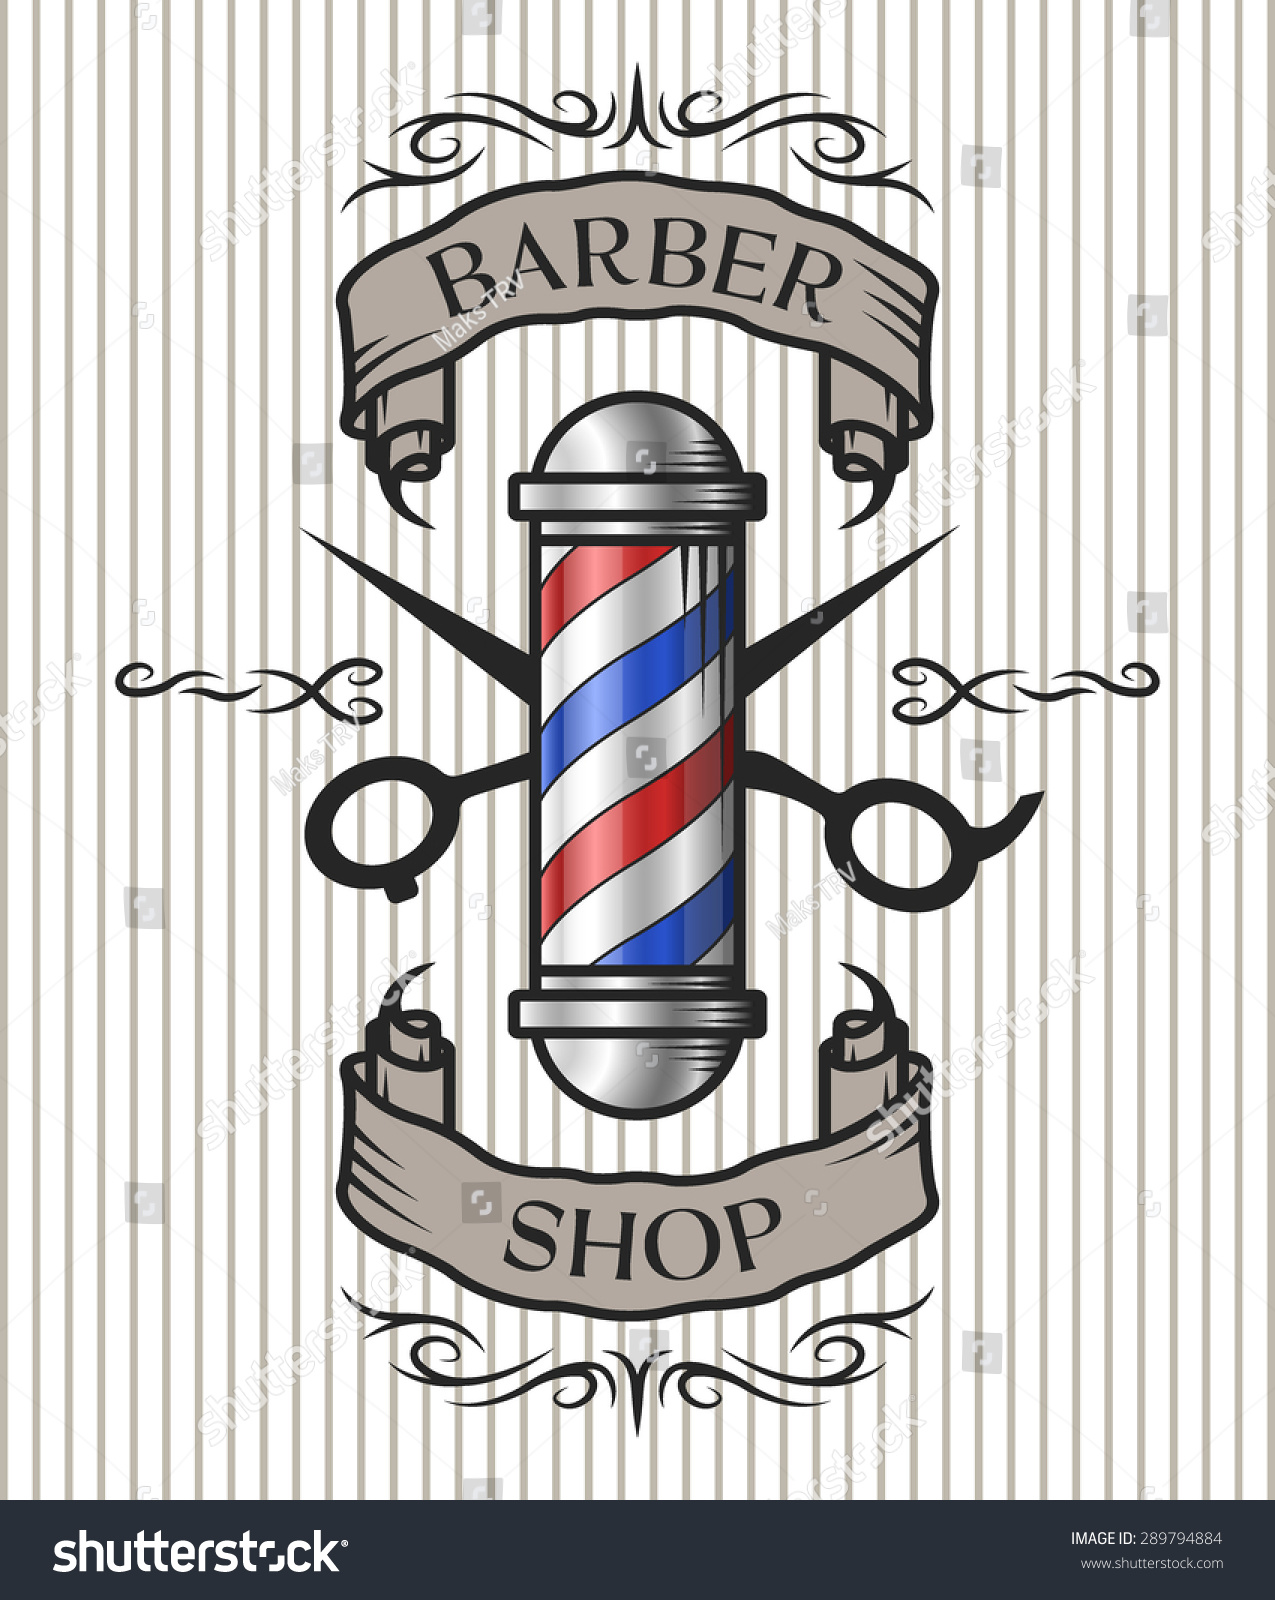 Barber Vector : Barber pole,scissors and ribbon for text in an old vintage style ...